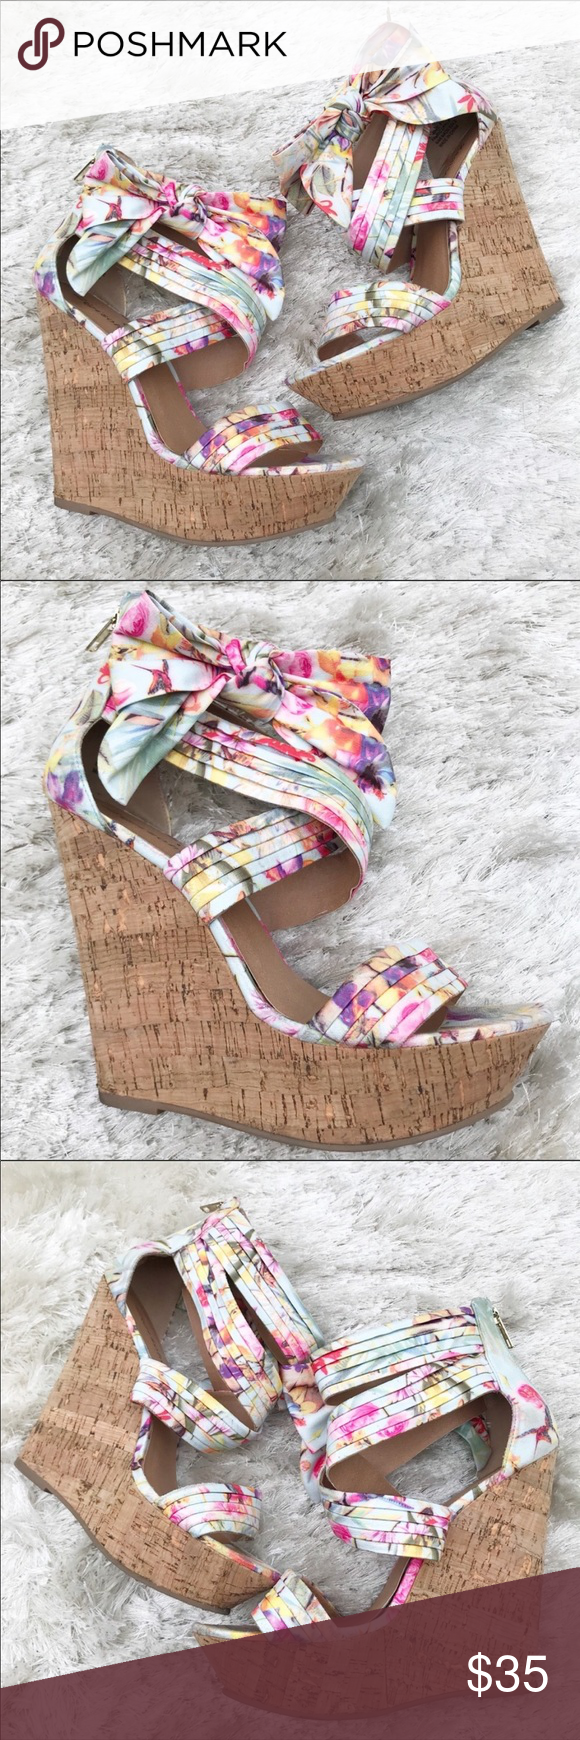 24c4fe3645d Zigisoho Sandee Floral Wedges Heighten your style with these floral wedges  from Zigi Soho. The Sandee platform sandal mixes fun and fresh trends from  a cork ...